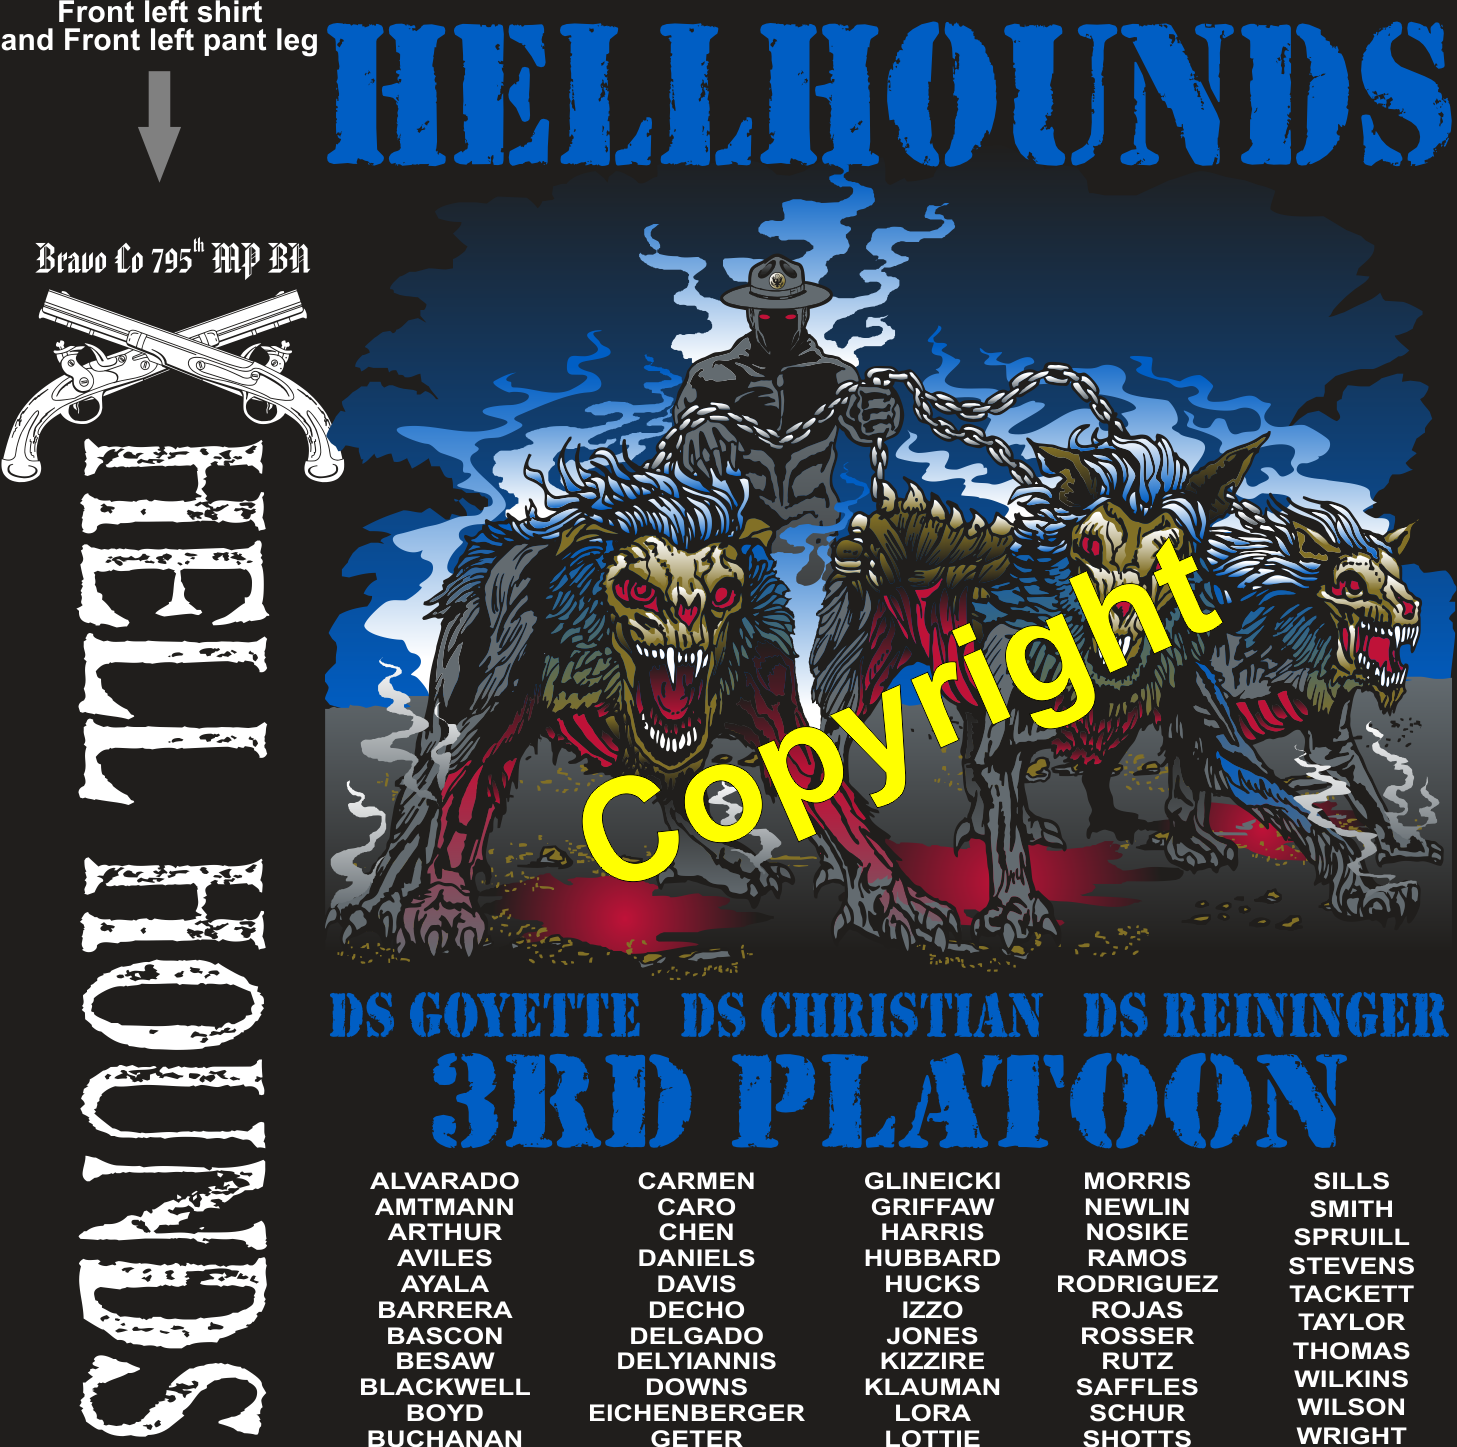 BRAVO 795 HELL HOUNDS GRADUATING DAY 6-20-2019 digital